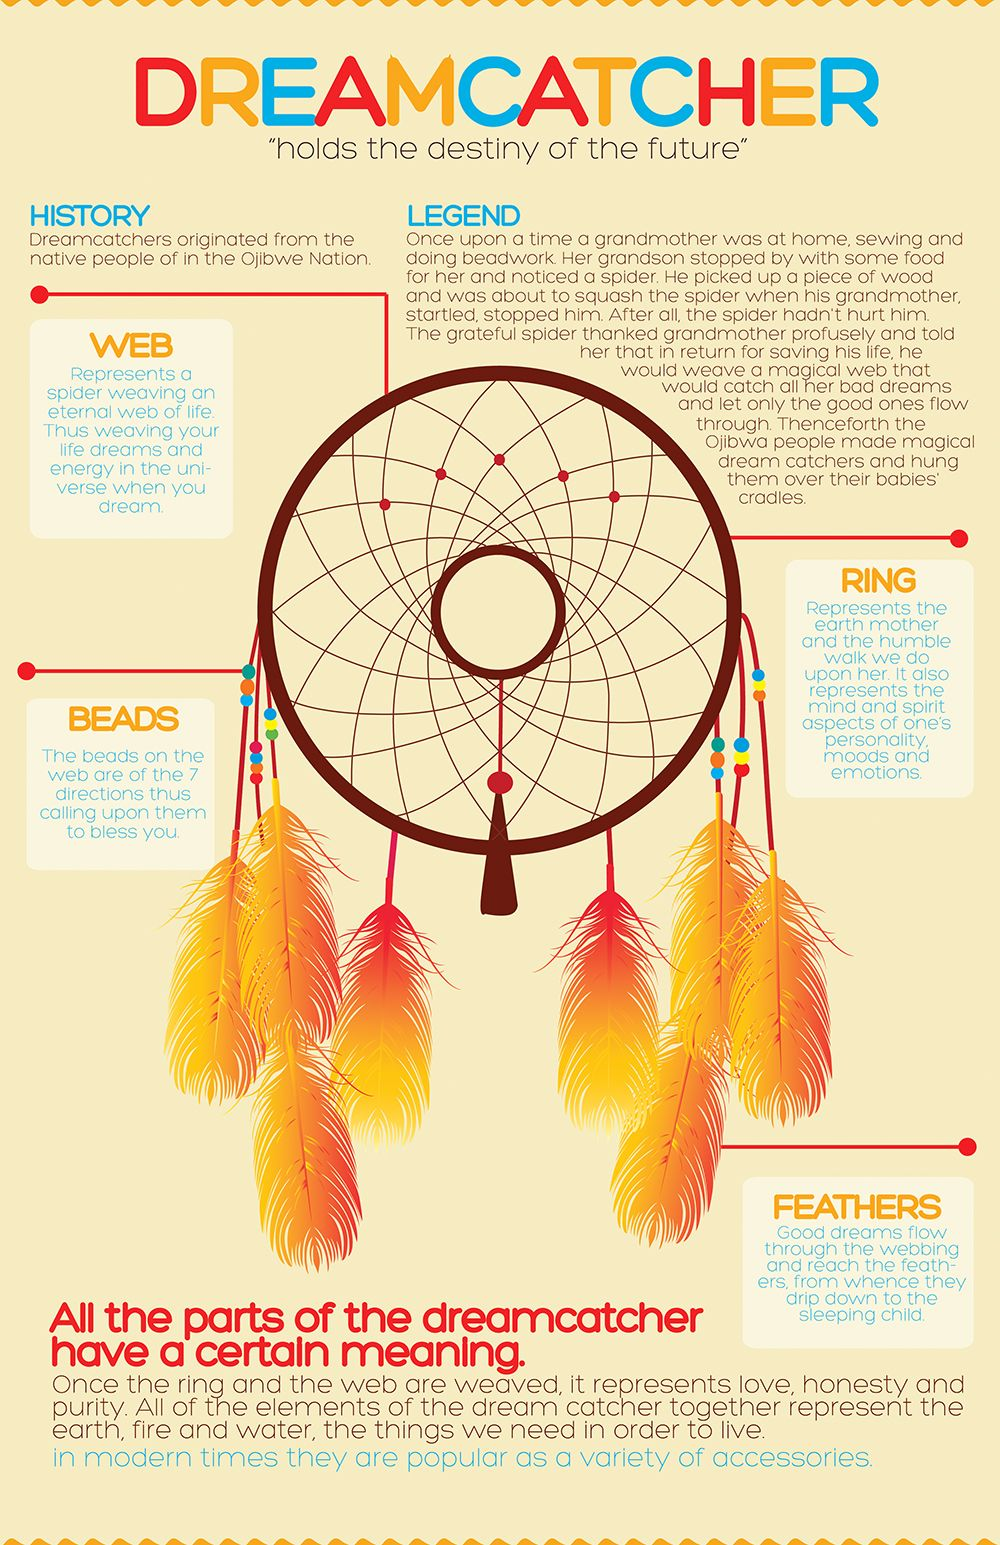 Dream Catcher Purpose Infographic I Made For My Typography Classi Love Dreamcatchers So